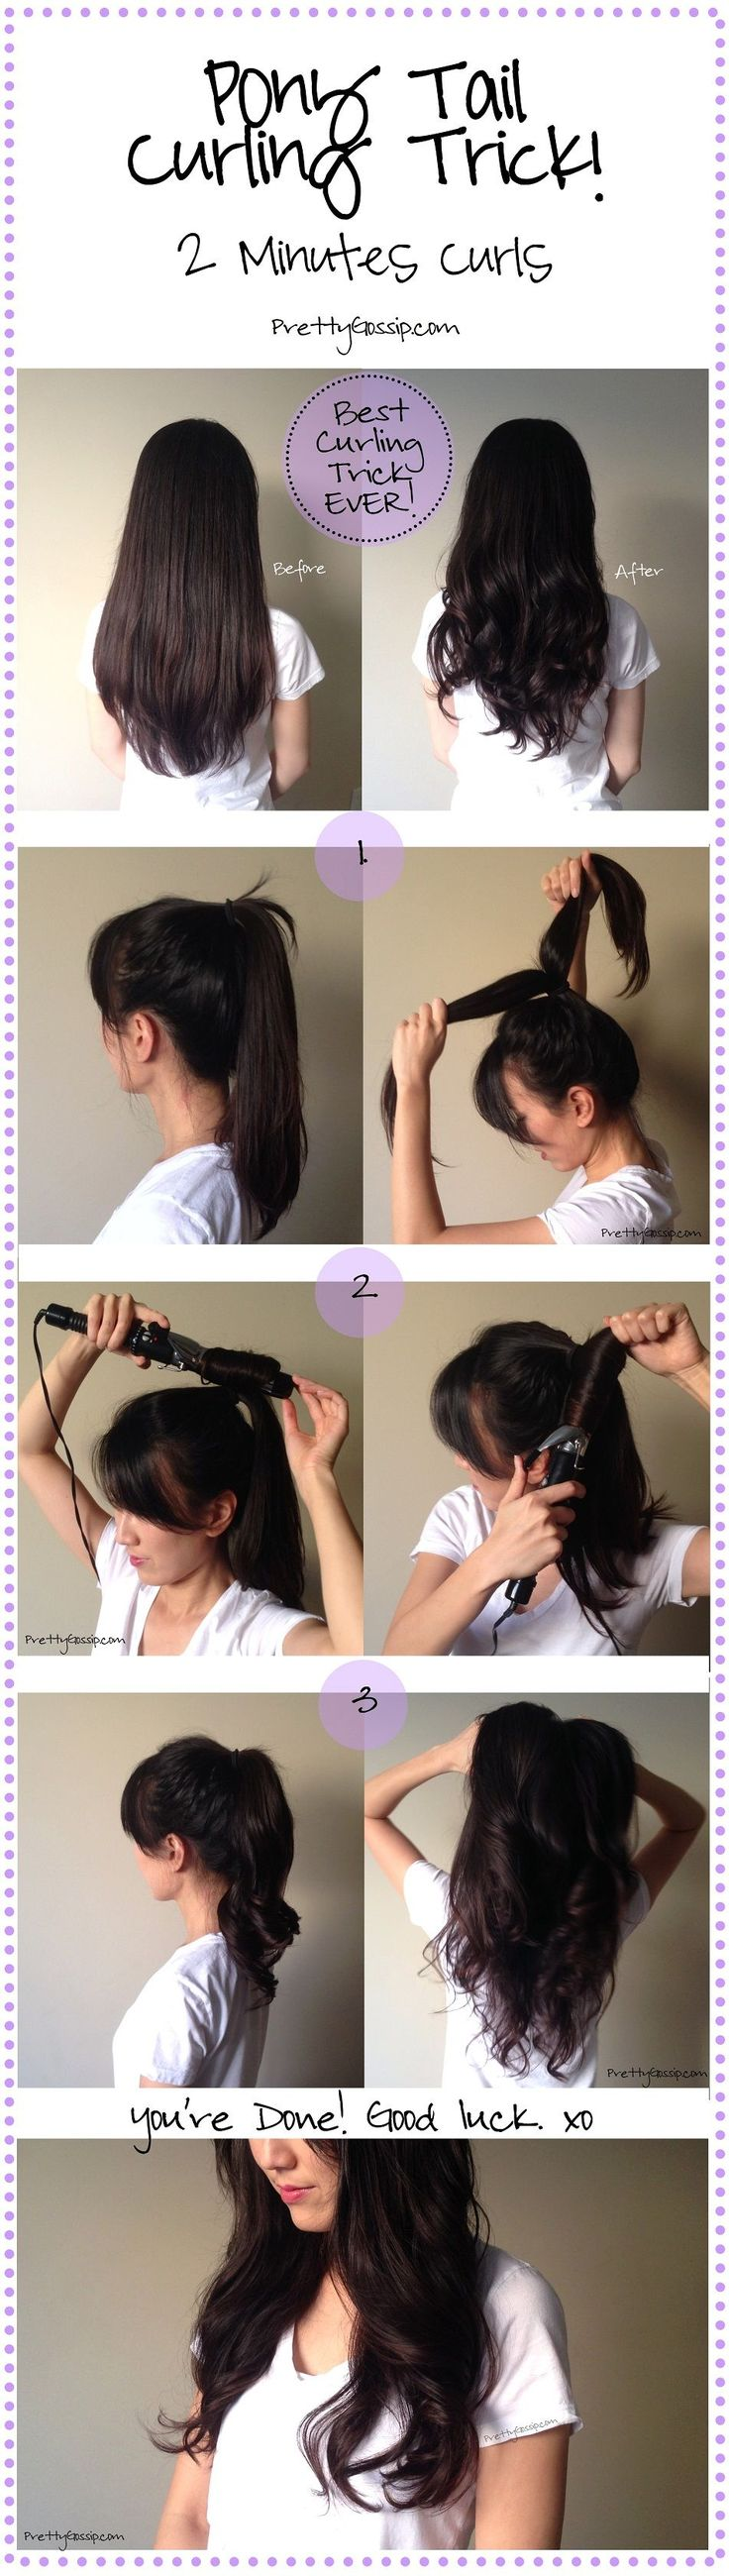 2 Minute Ponytail Curling Trick Pictures, Photos, and Images for Facebook, Tumblr, Pinterest, and Twitter